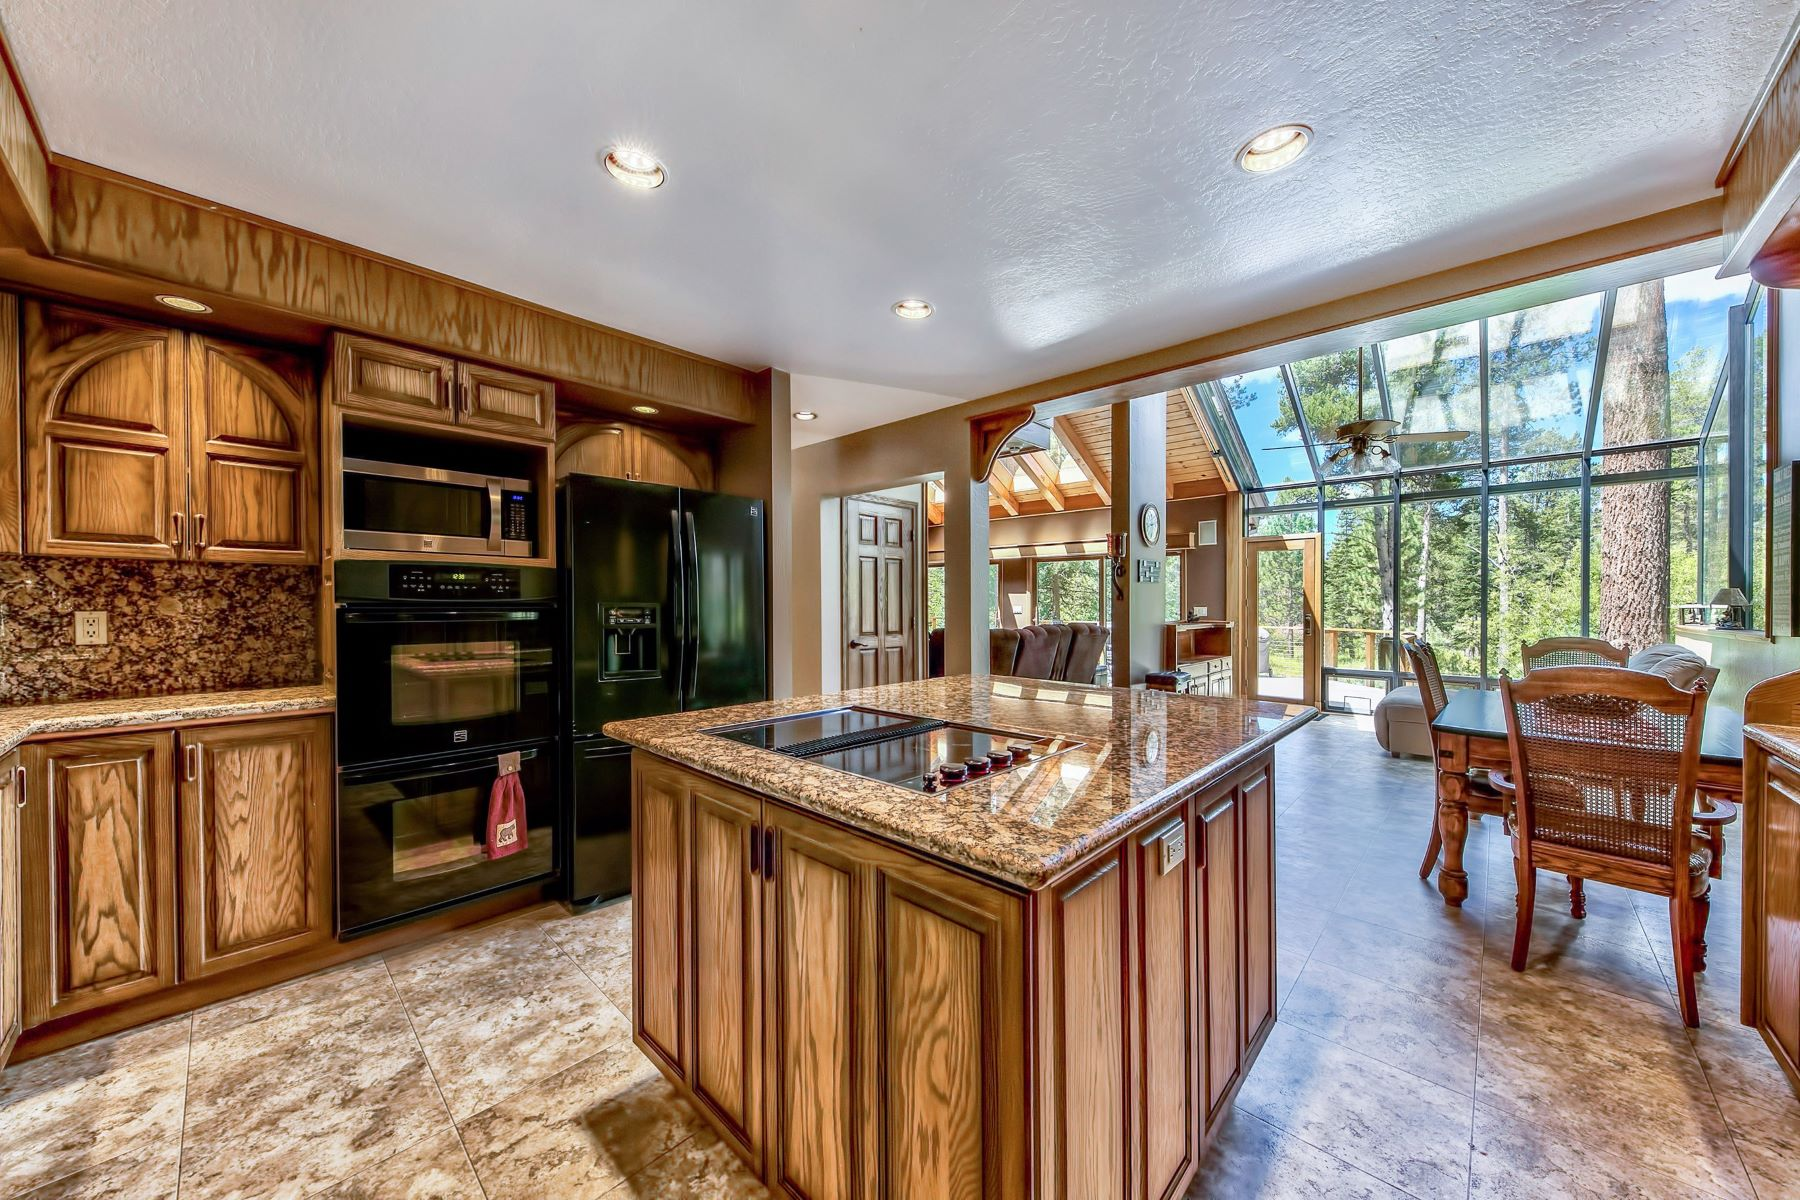 Additional photo for property listing at 952 Silverwood Circle, South Lake Tahoe, CA 96150 952 Silverwood Circle South Lake Tahoe, California 96150 Estados Unidos